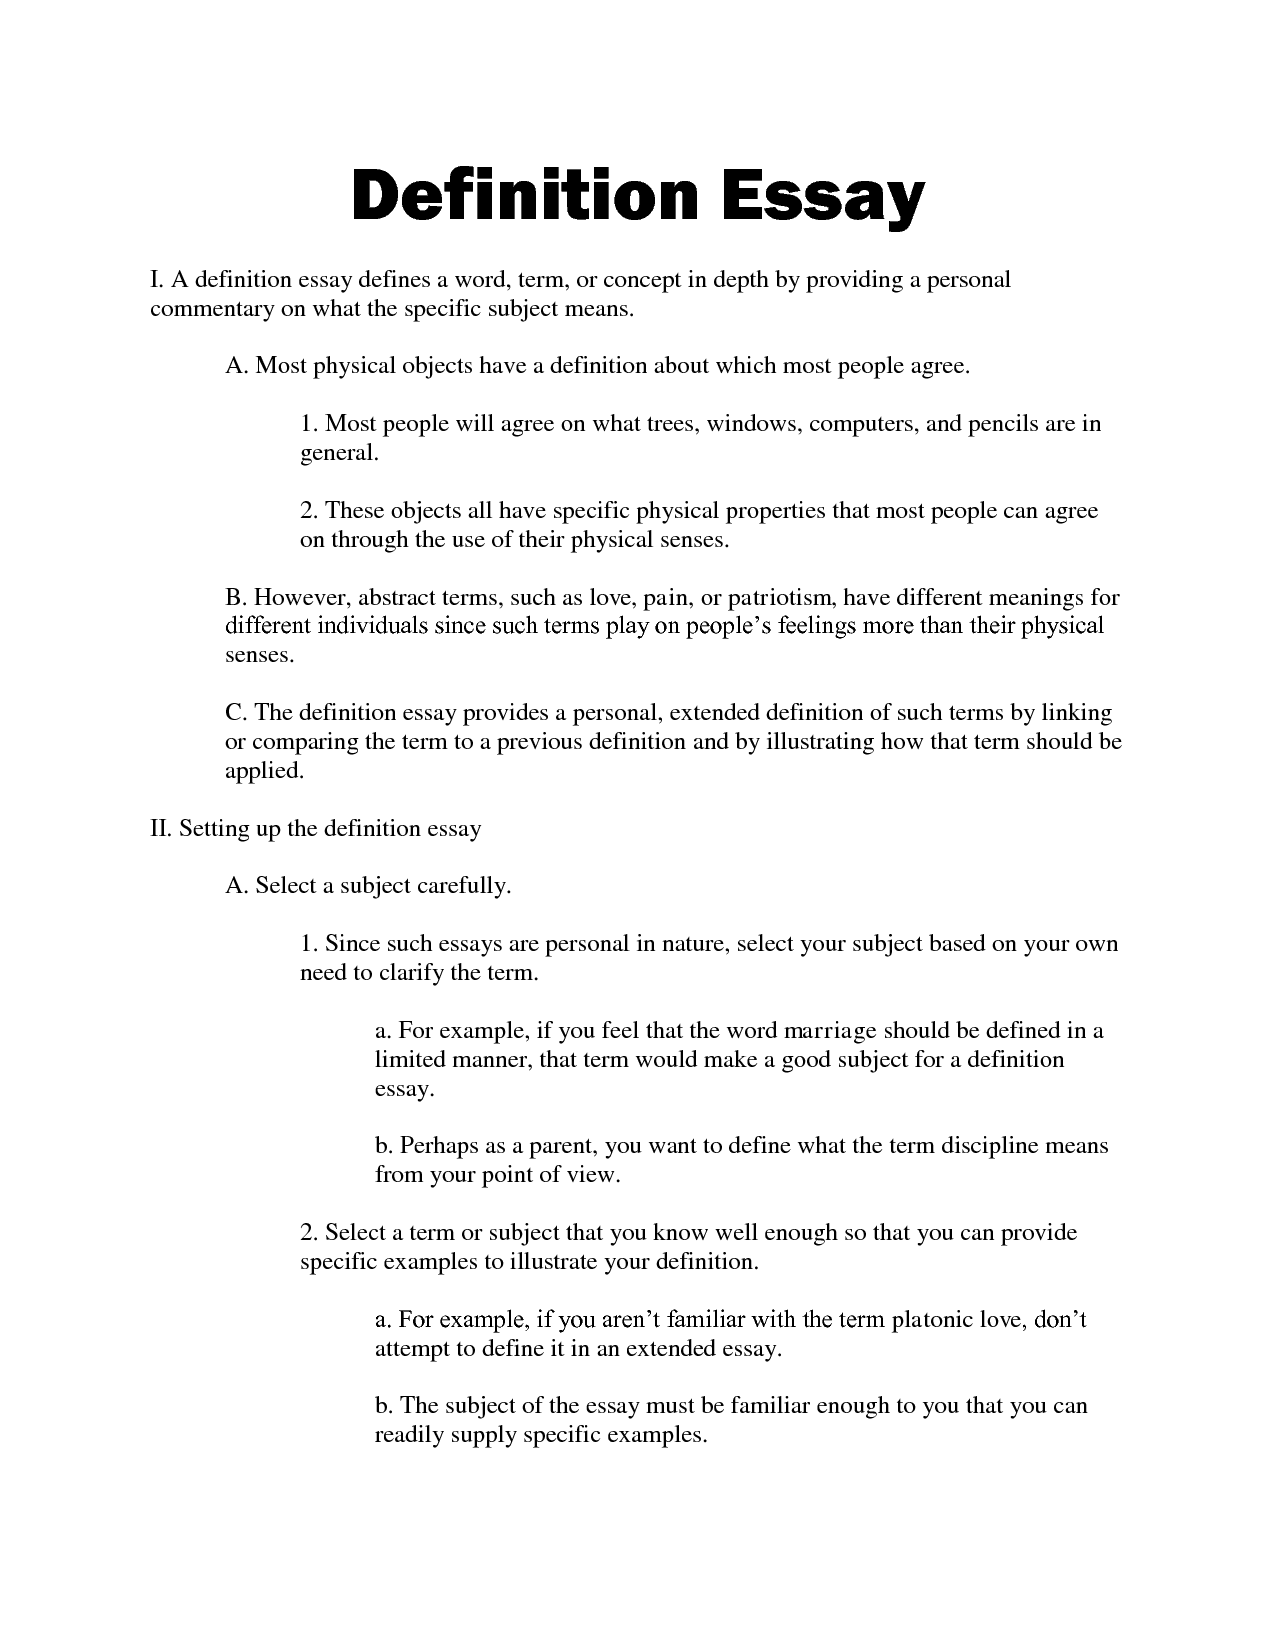 Rules of the game short story essay